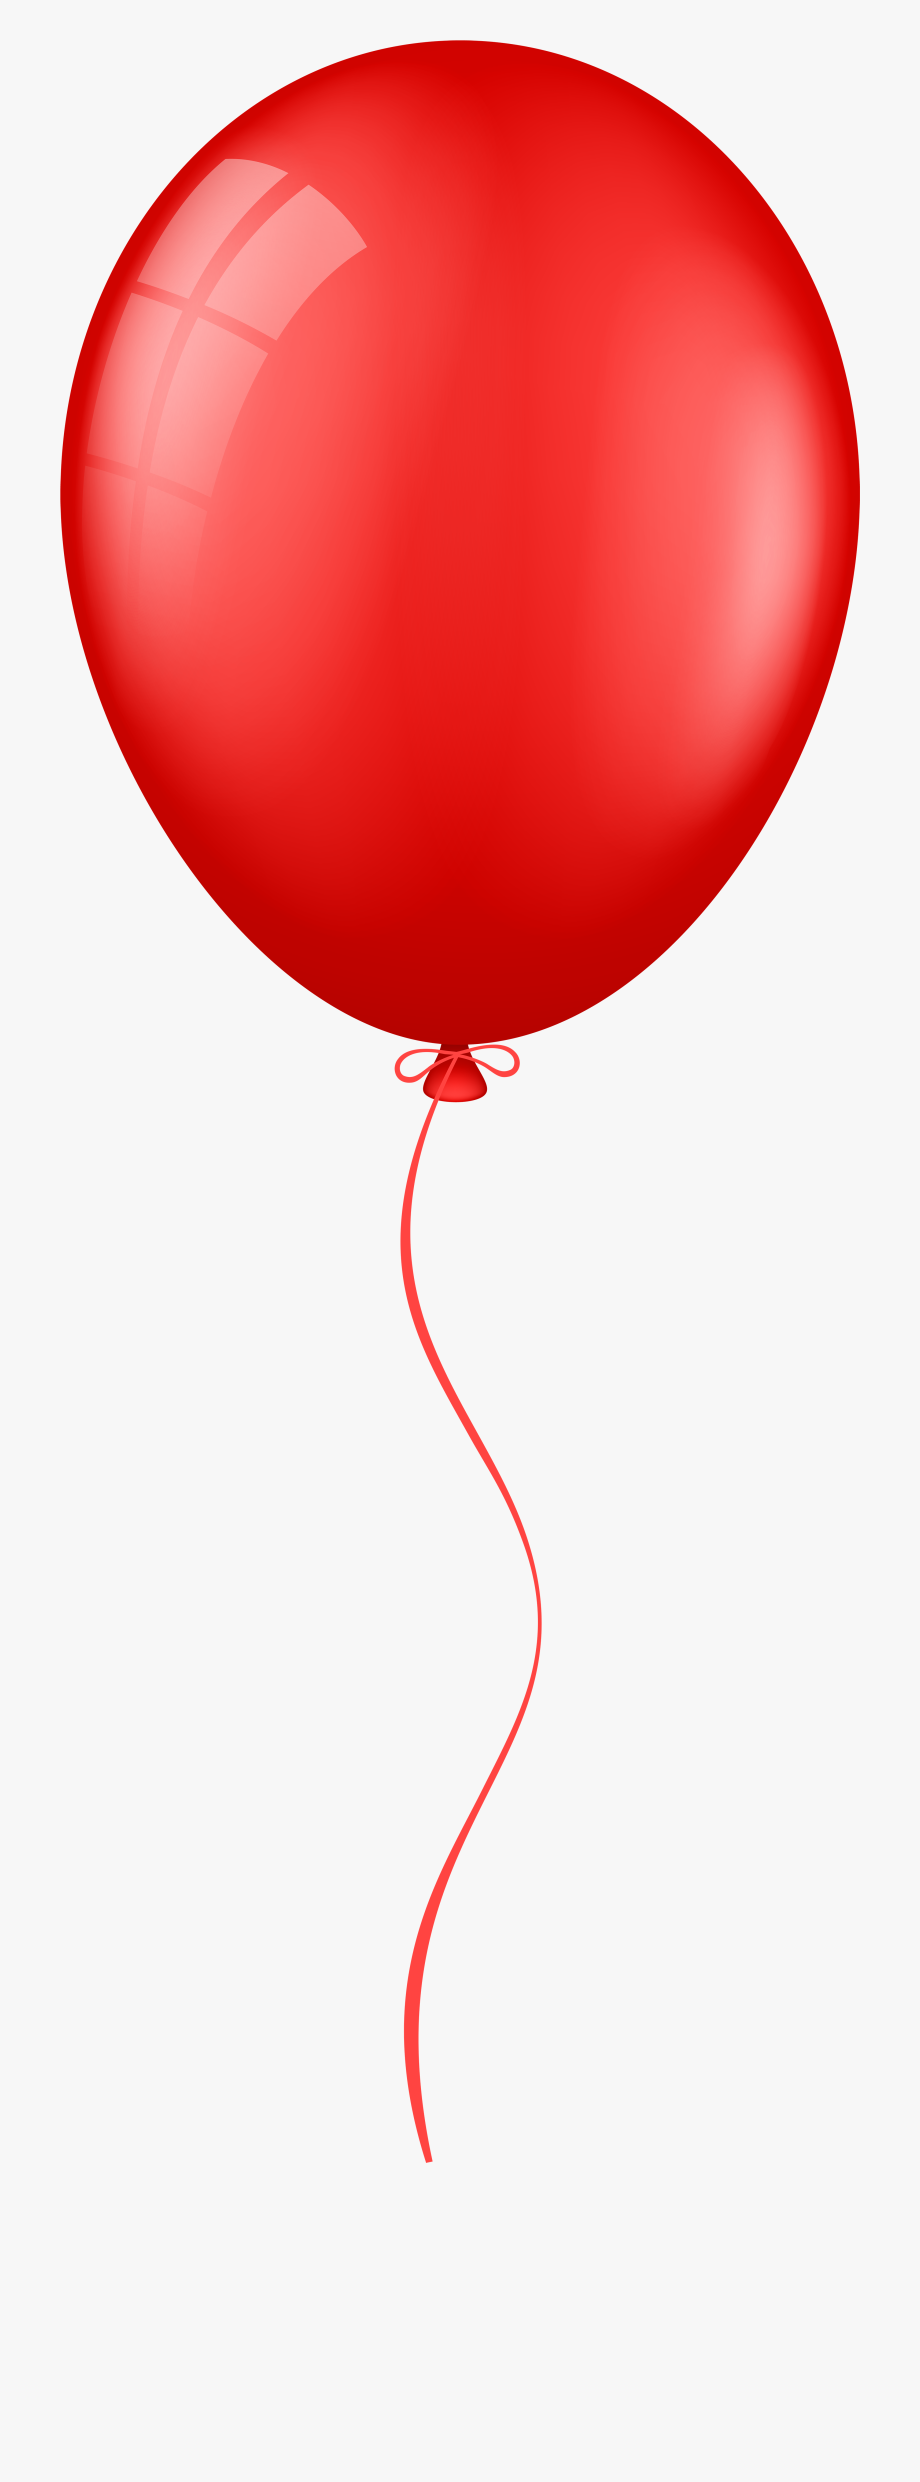 Red Balloon Png , Transparent Cartoon, Free Cliparts.